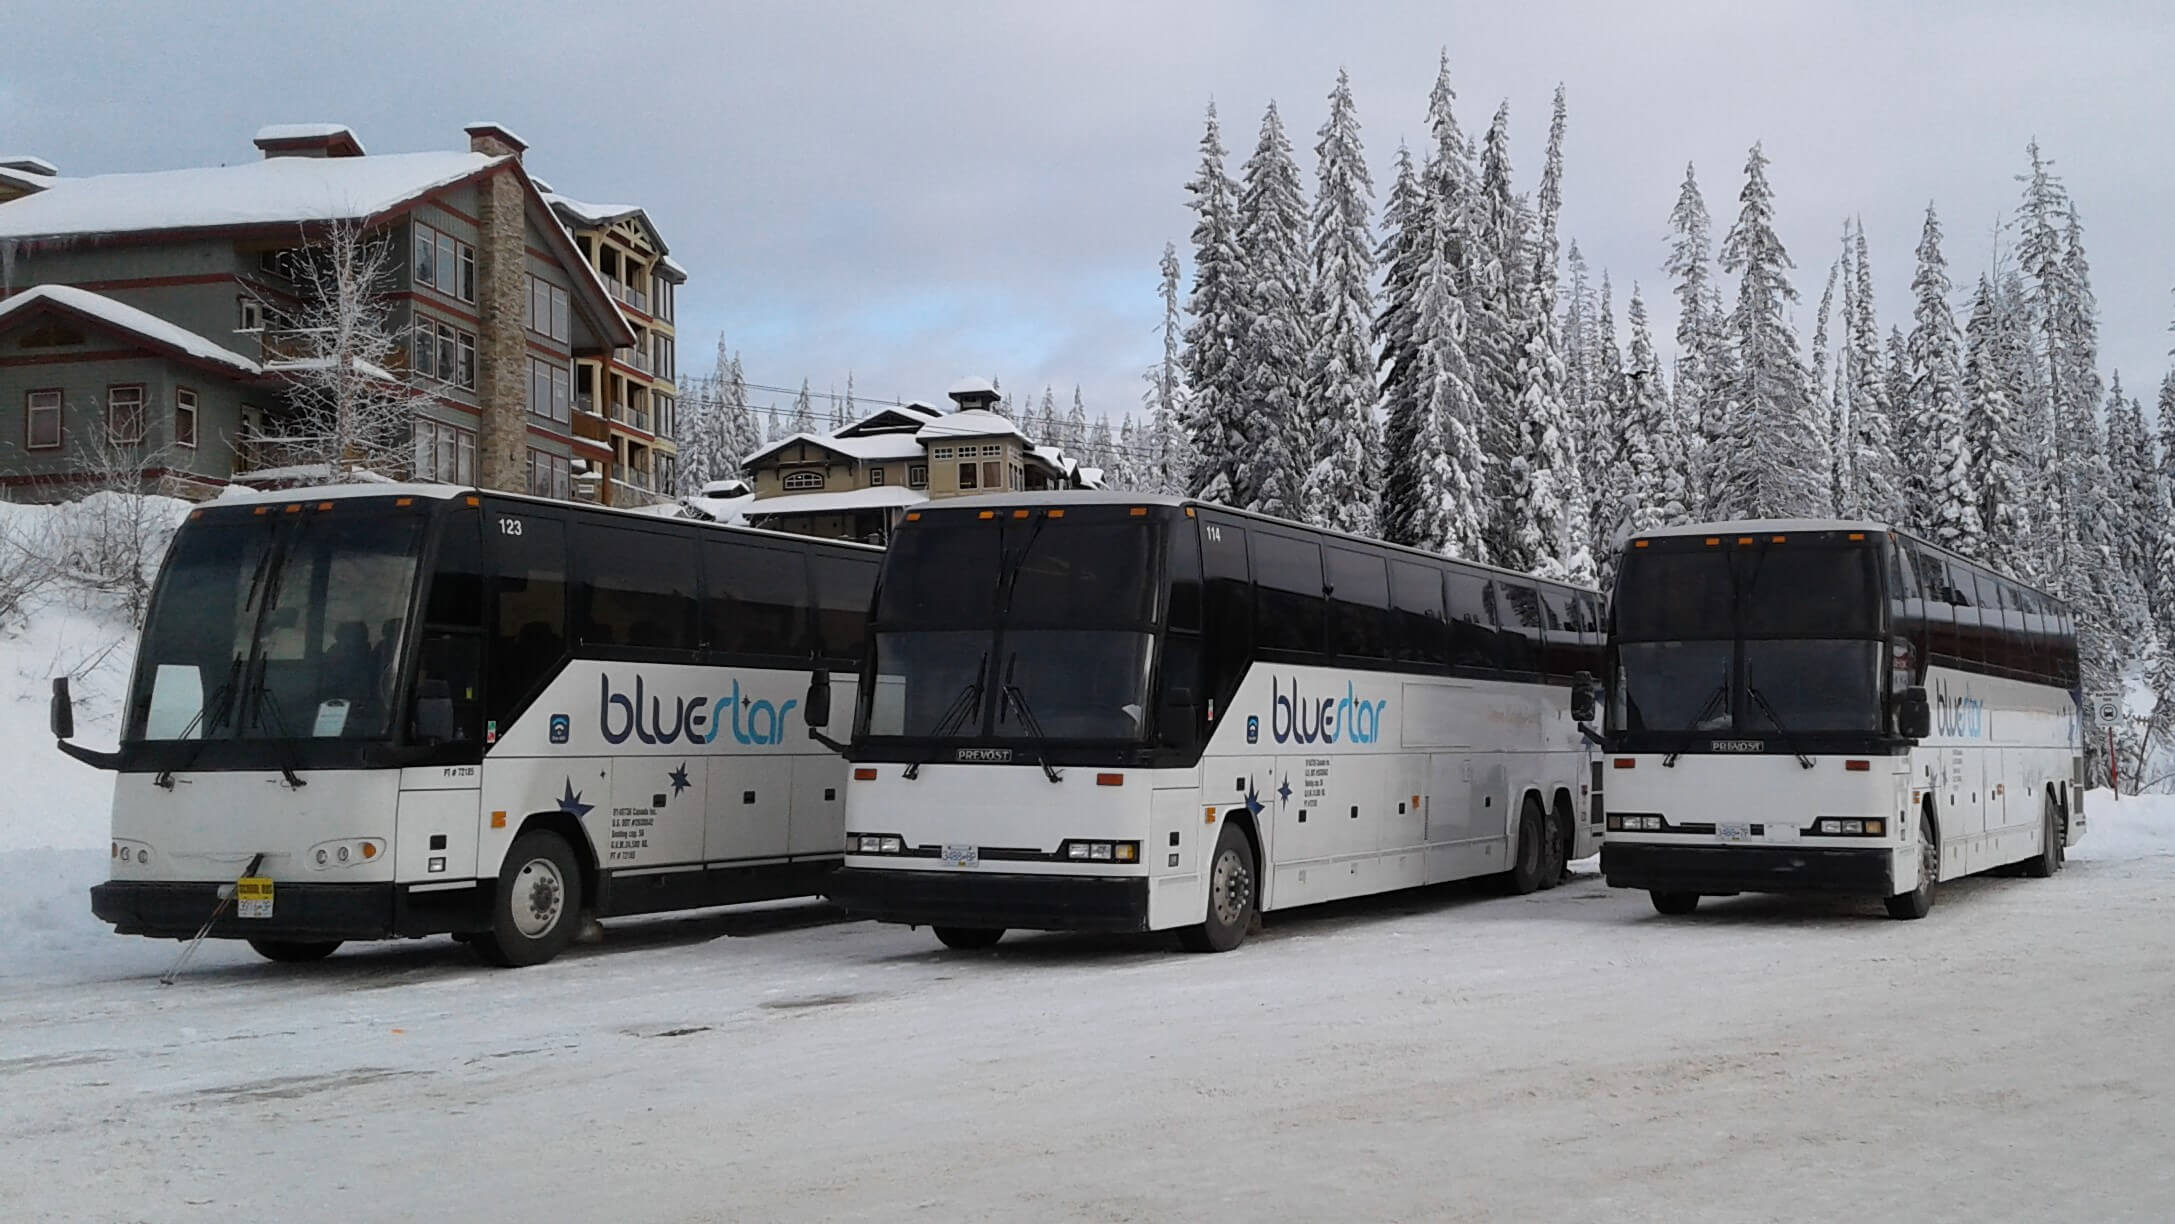 Blue Star Coachlines at Big White